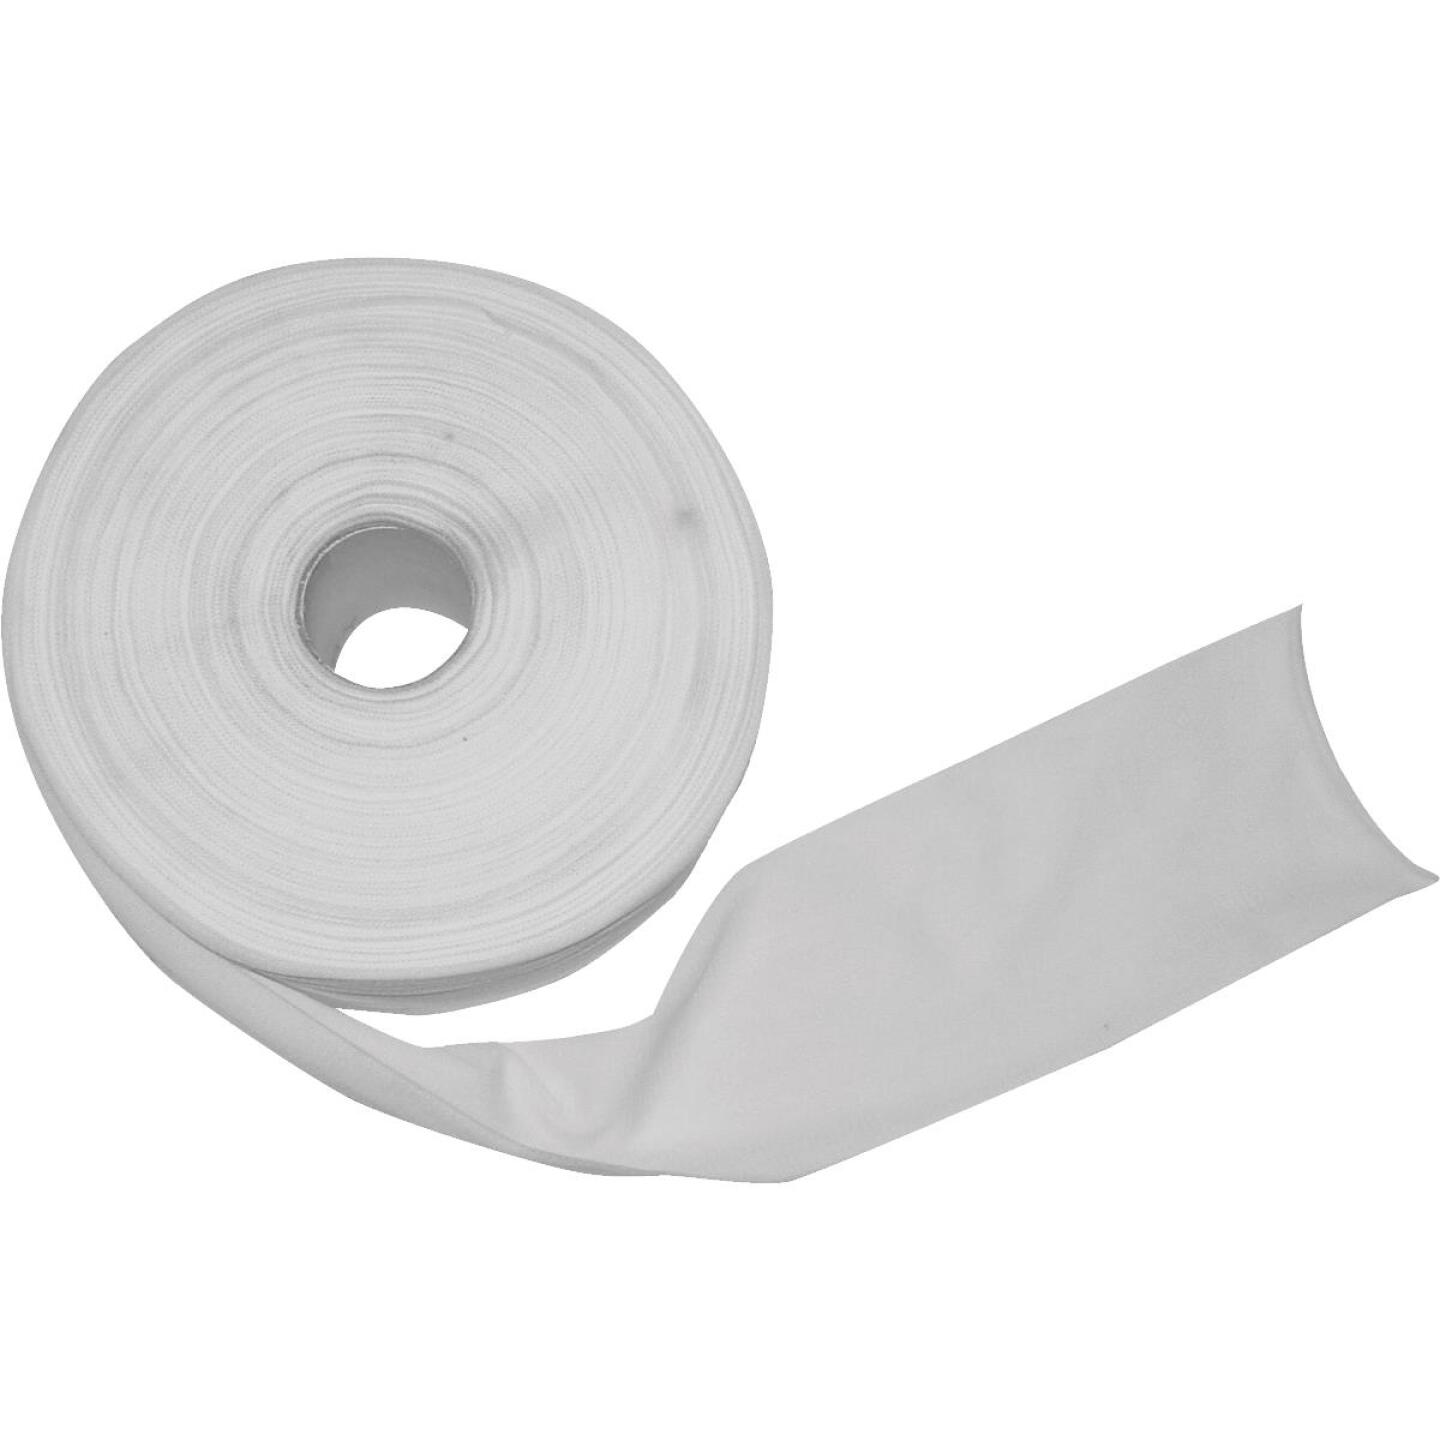 Advanced Drainage Systems 6 In. W x 100 Ft. L Fabric Drain Guard Sock Image 1